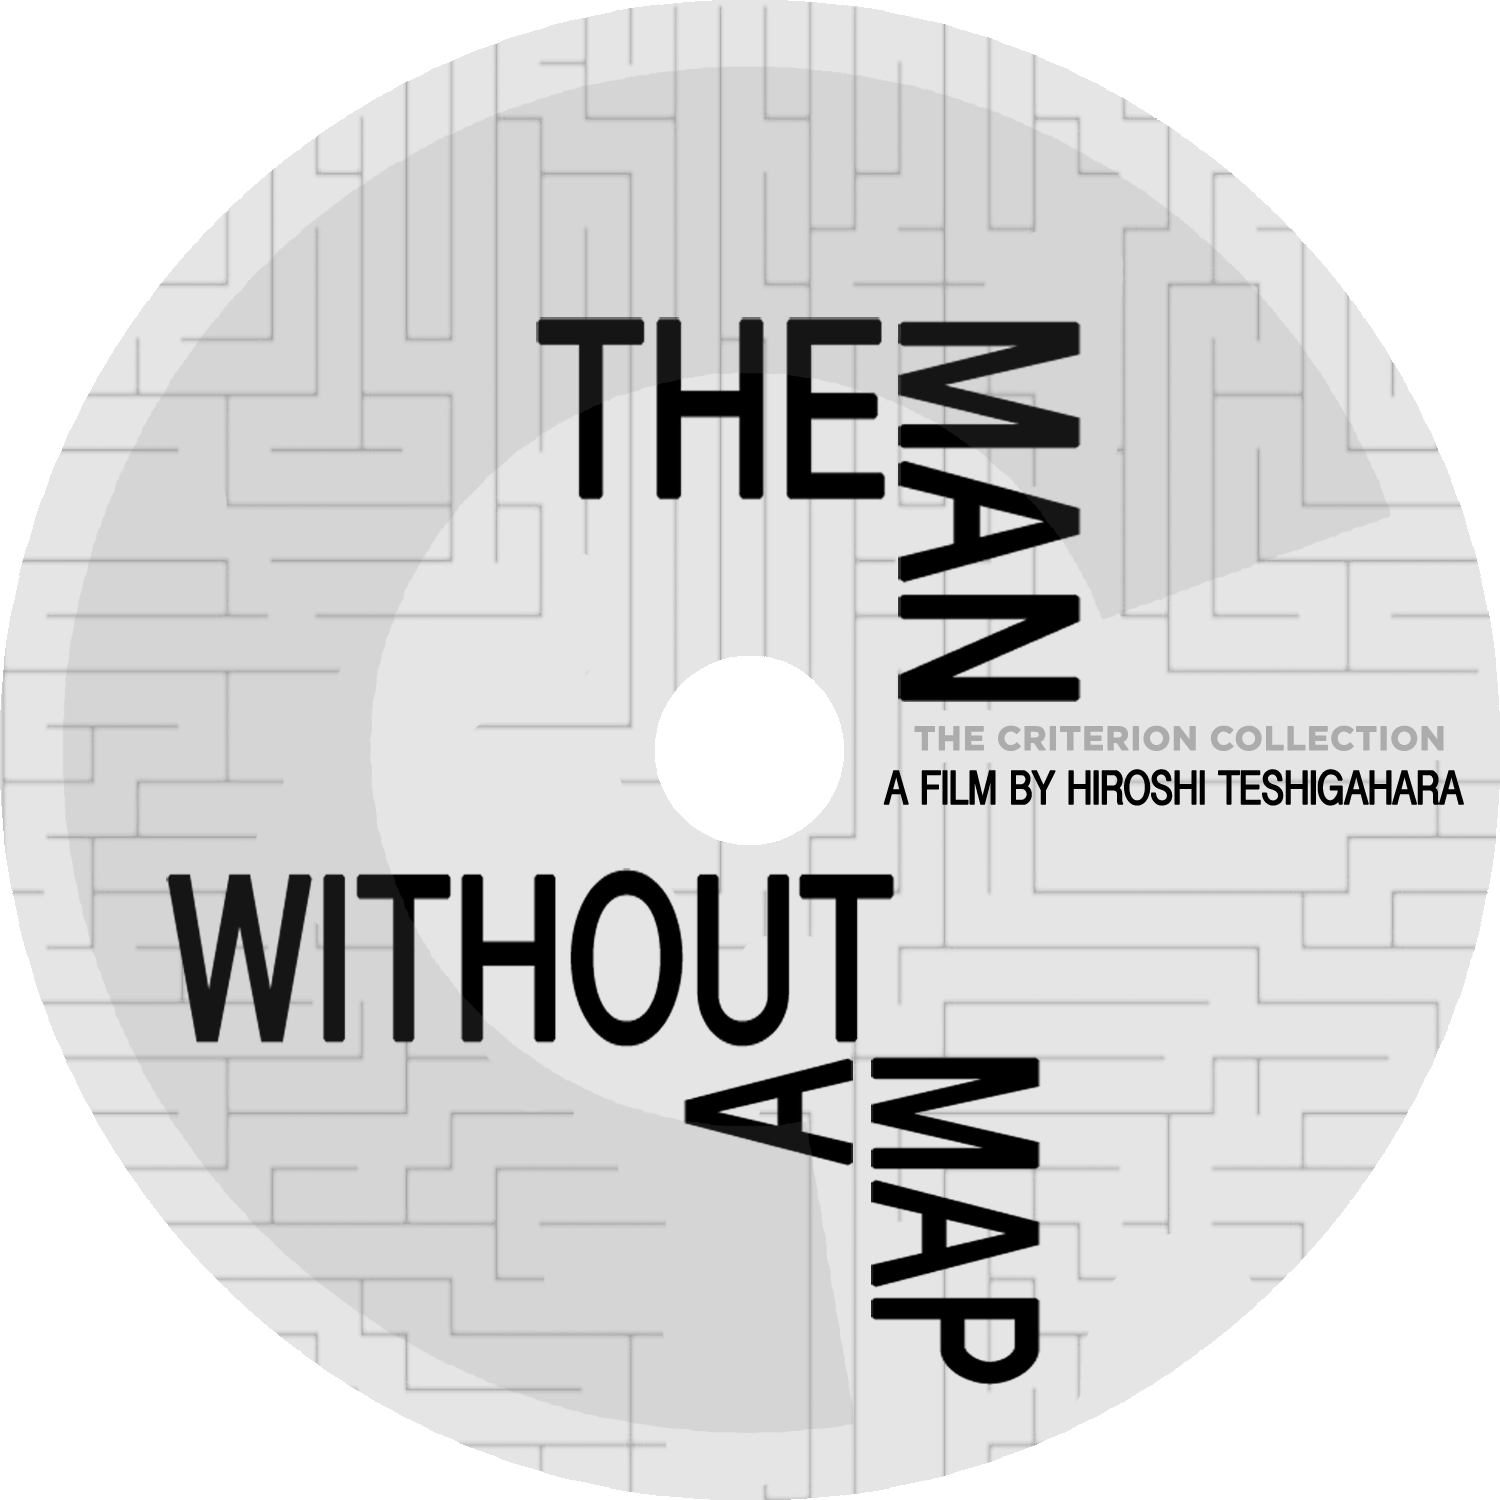 man-without-a-map-disc-2.png